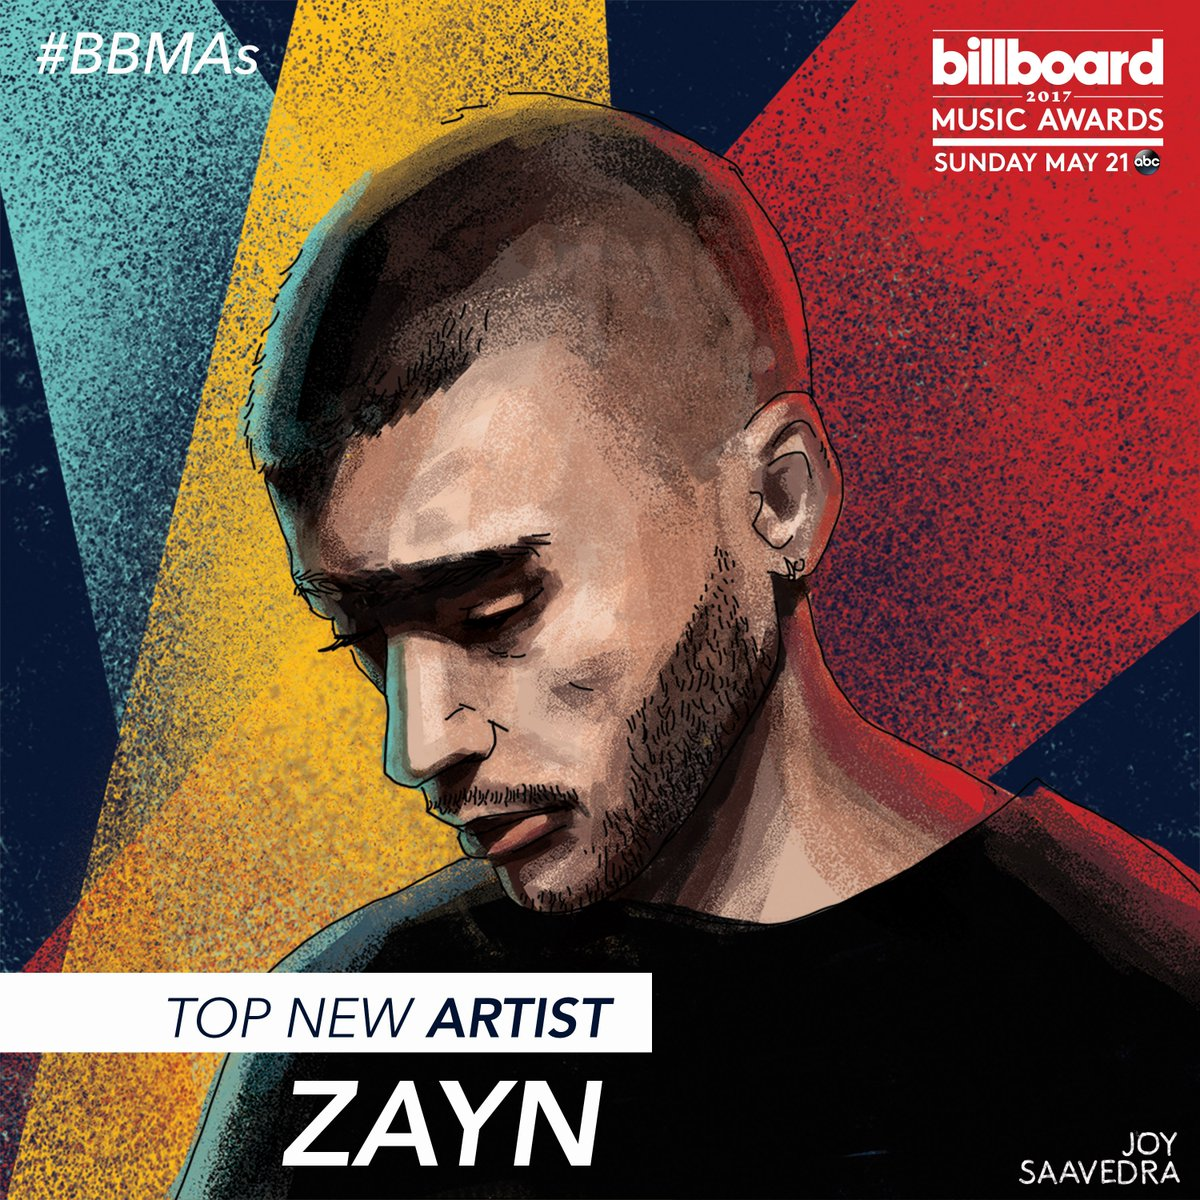 #BBMAs Top New Artist nominee @zaynmalik has spent over 40 weeks on the Billboard Hot 100! 💕